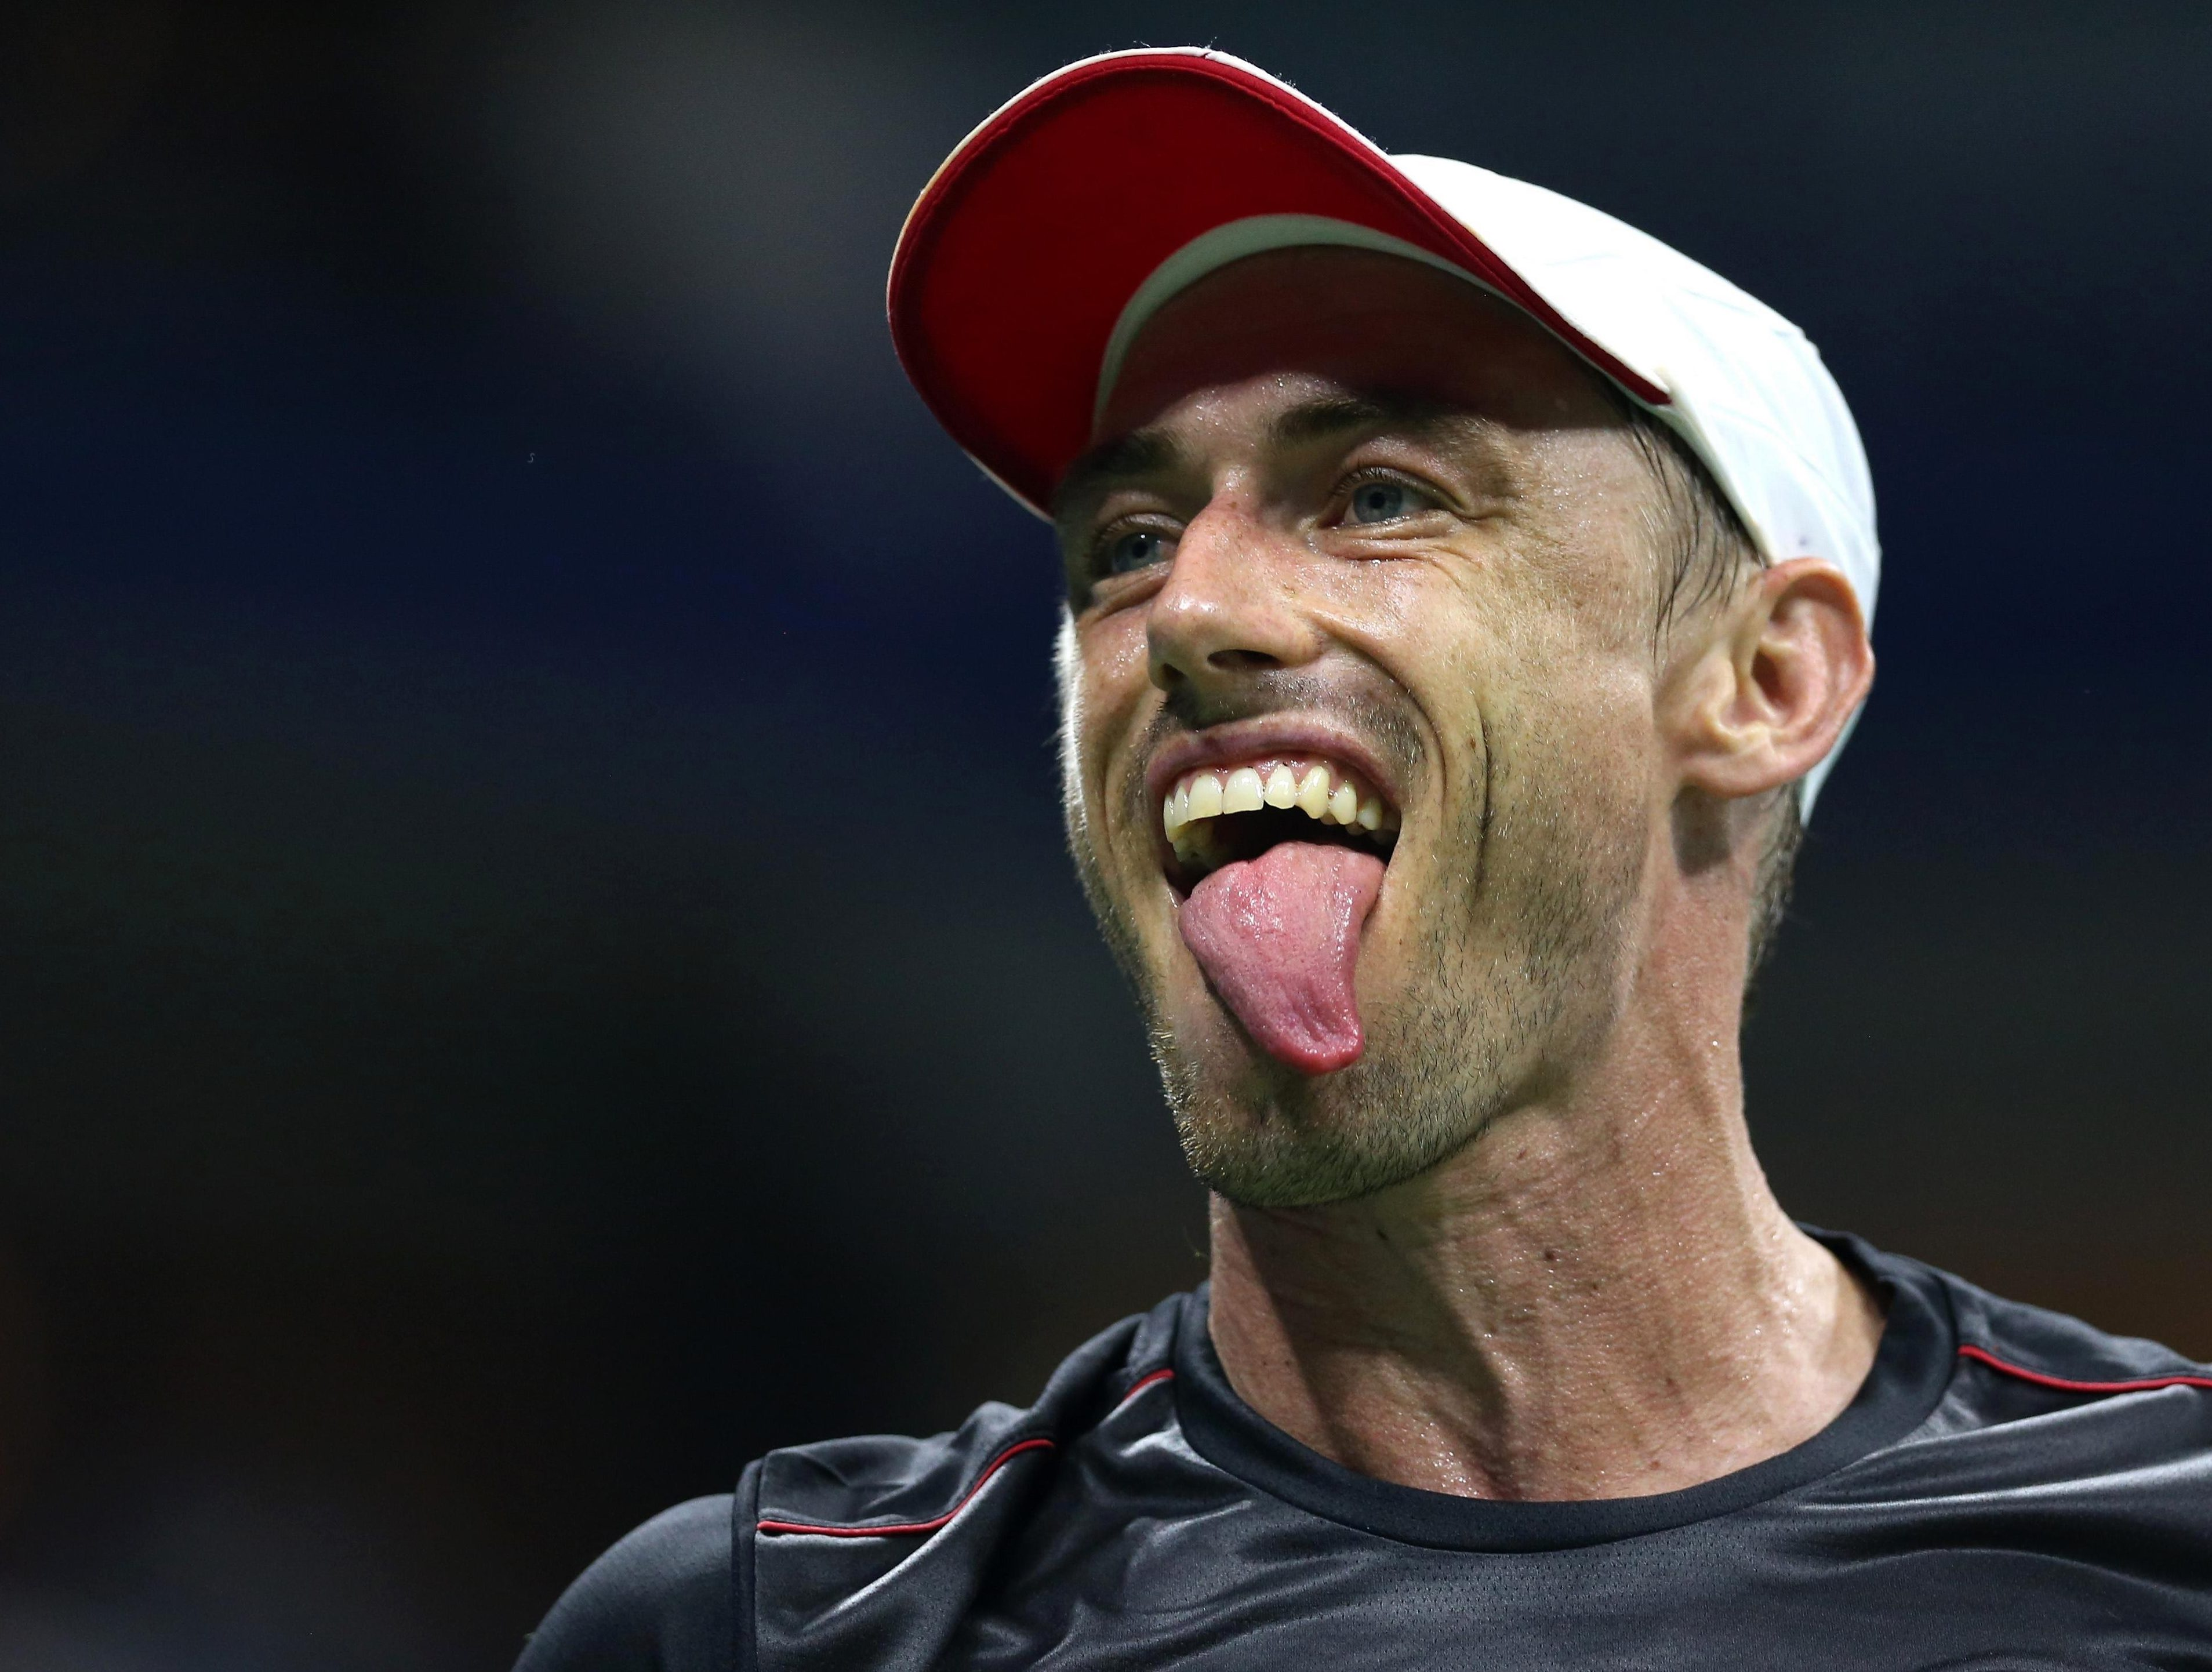 John Millman secured a stunning win at the US Open